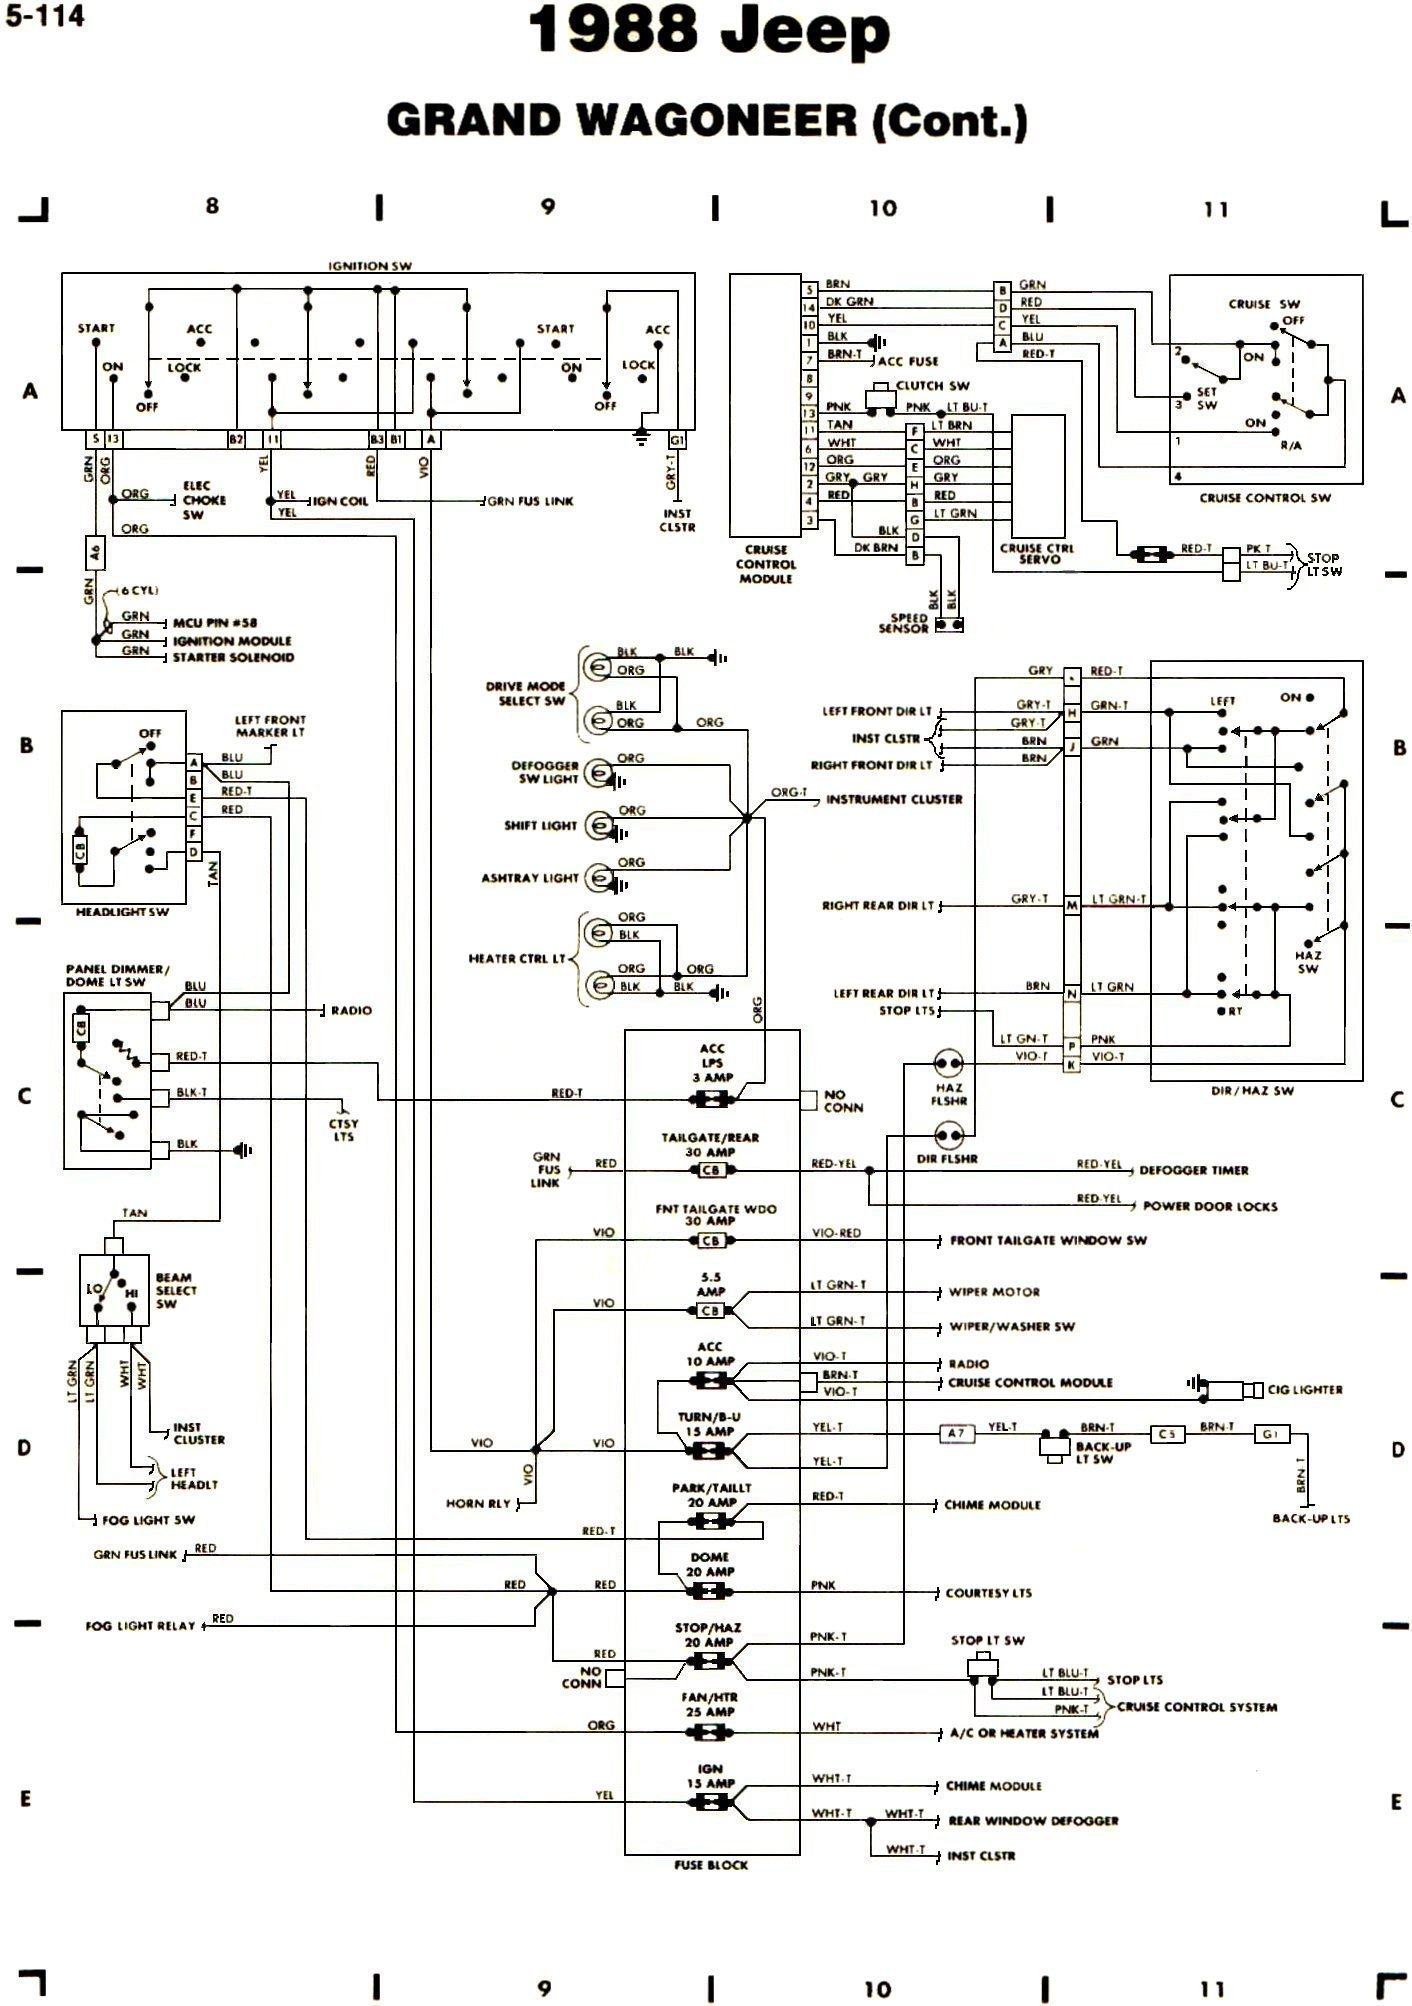 freightliner wiring fuse box diagram jRoIVIr?resize=665%2C945 diagrams 1280800 freightliner columbia wiring diagram i have a freightliner columbia headlight wiring diagram at aneh.co